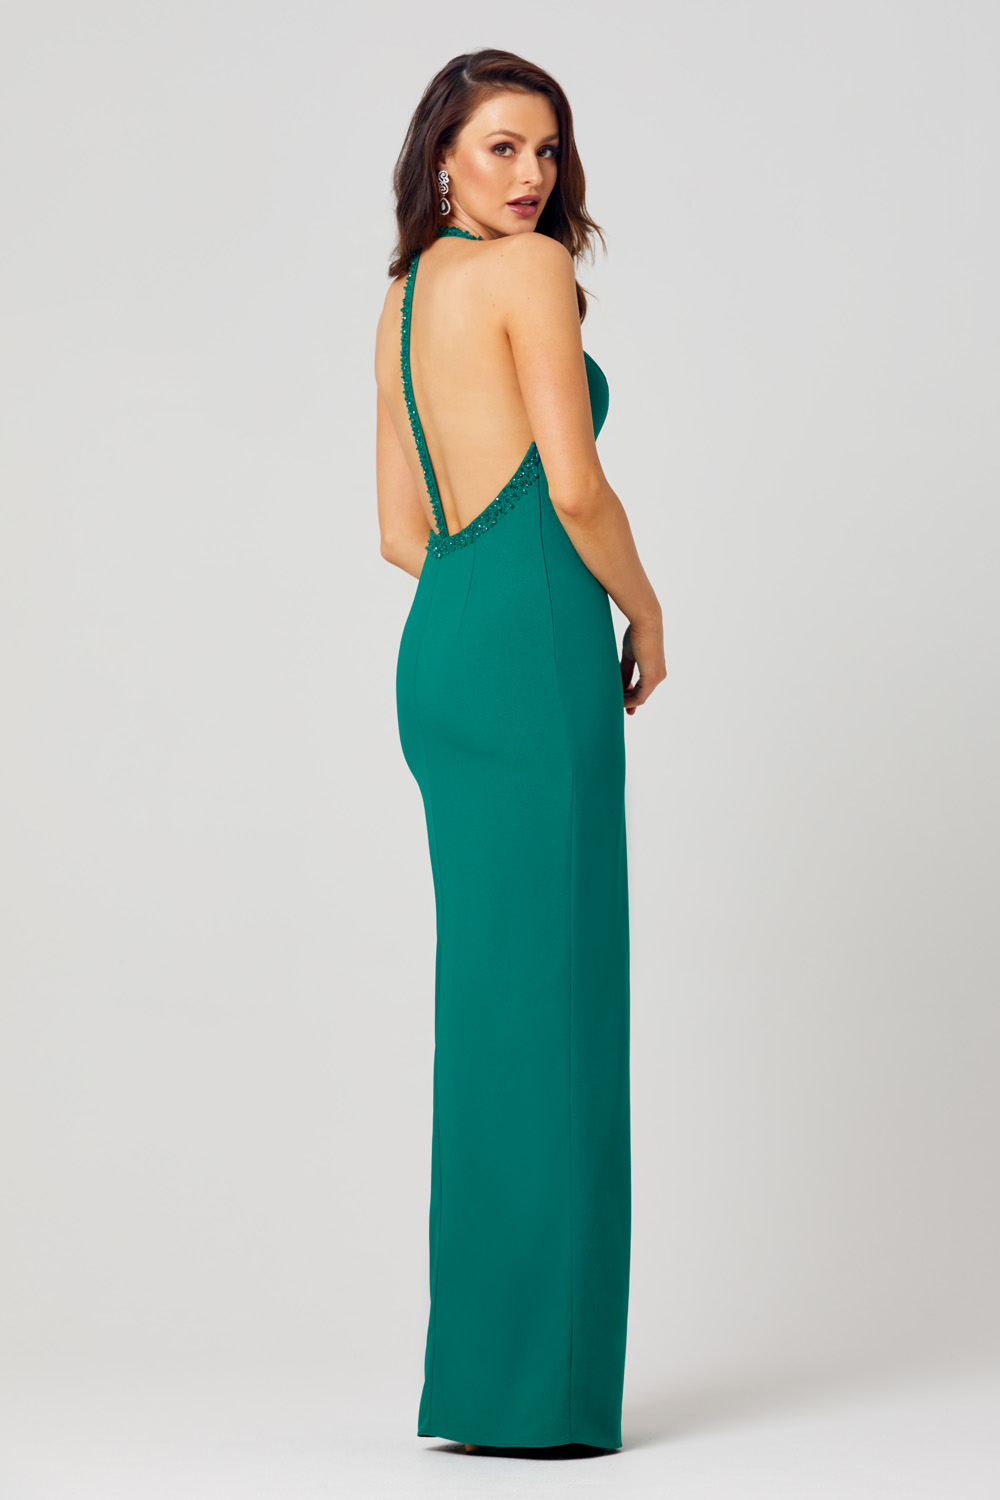 Tessa Beaded Halterneck Formal Dress - PO814 back